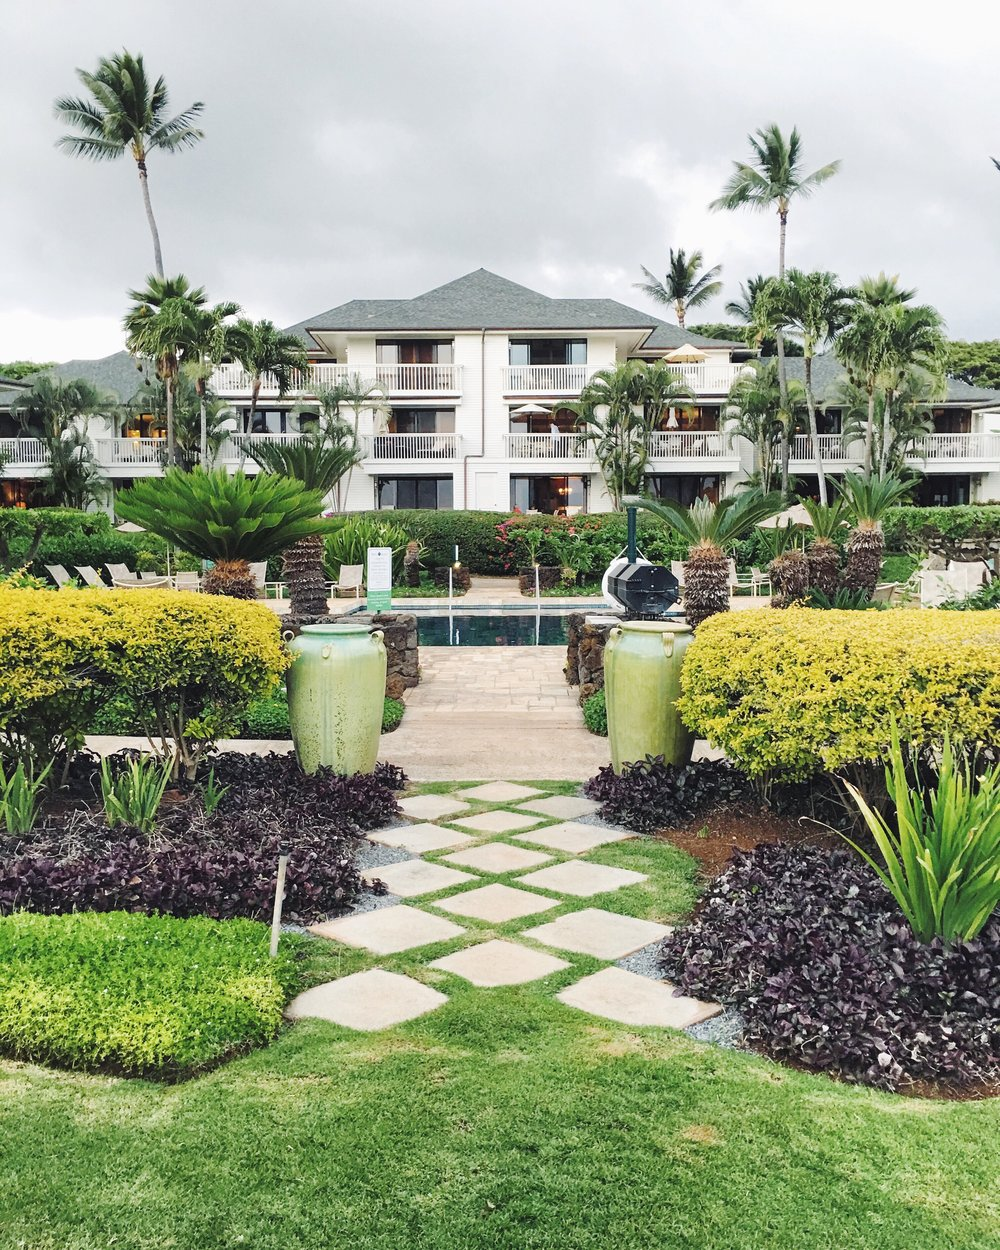 where we stayed in Poipu - This was an amazing vacation luxury rental that we found via vrbo.